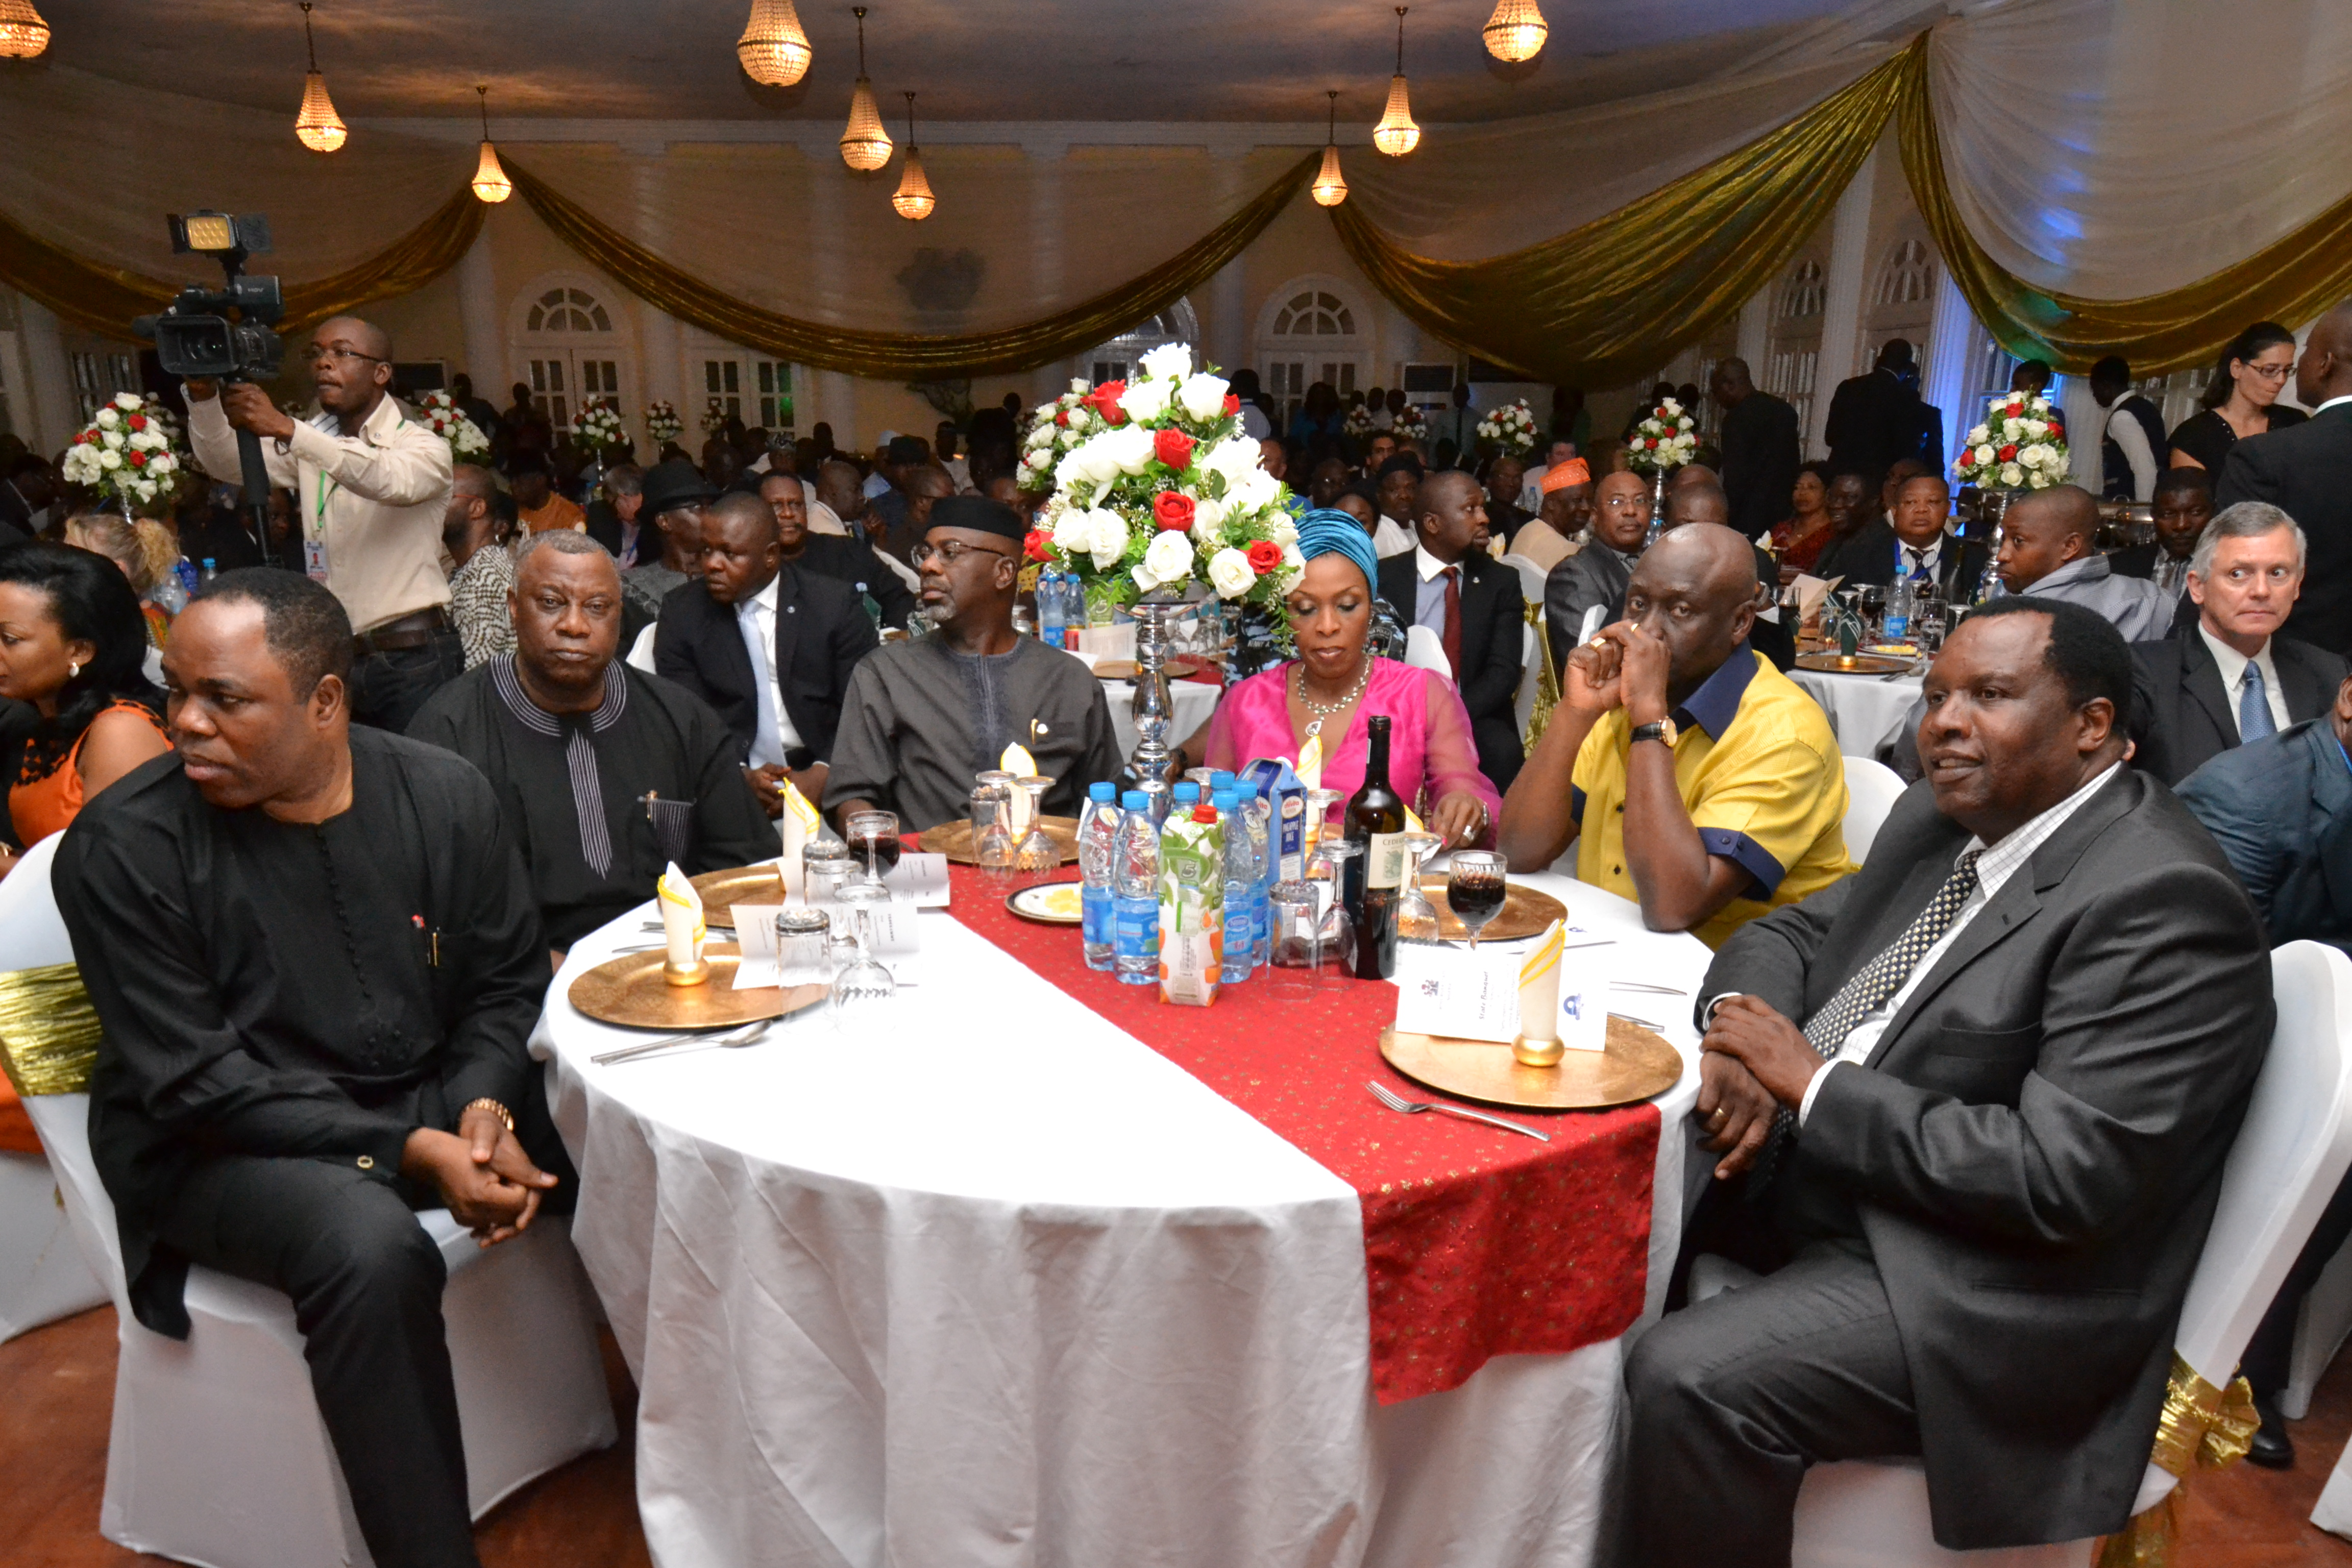 Cross River State Governor, Liyel Imoke, his wife and other guests at the state banquet